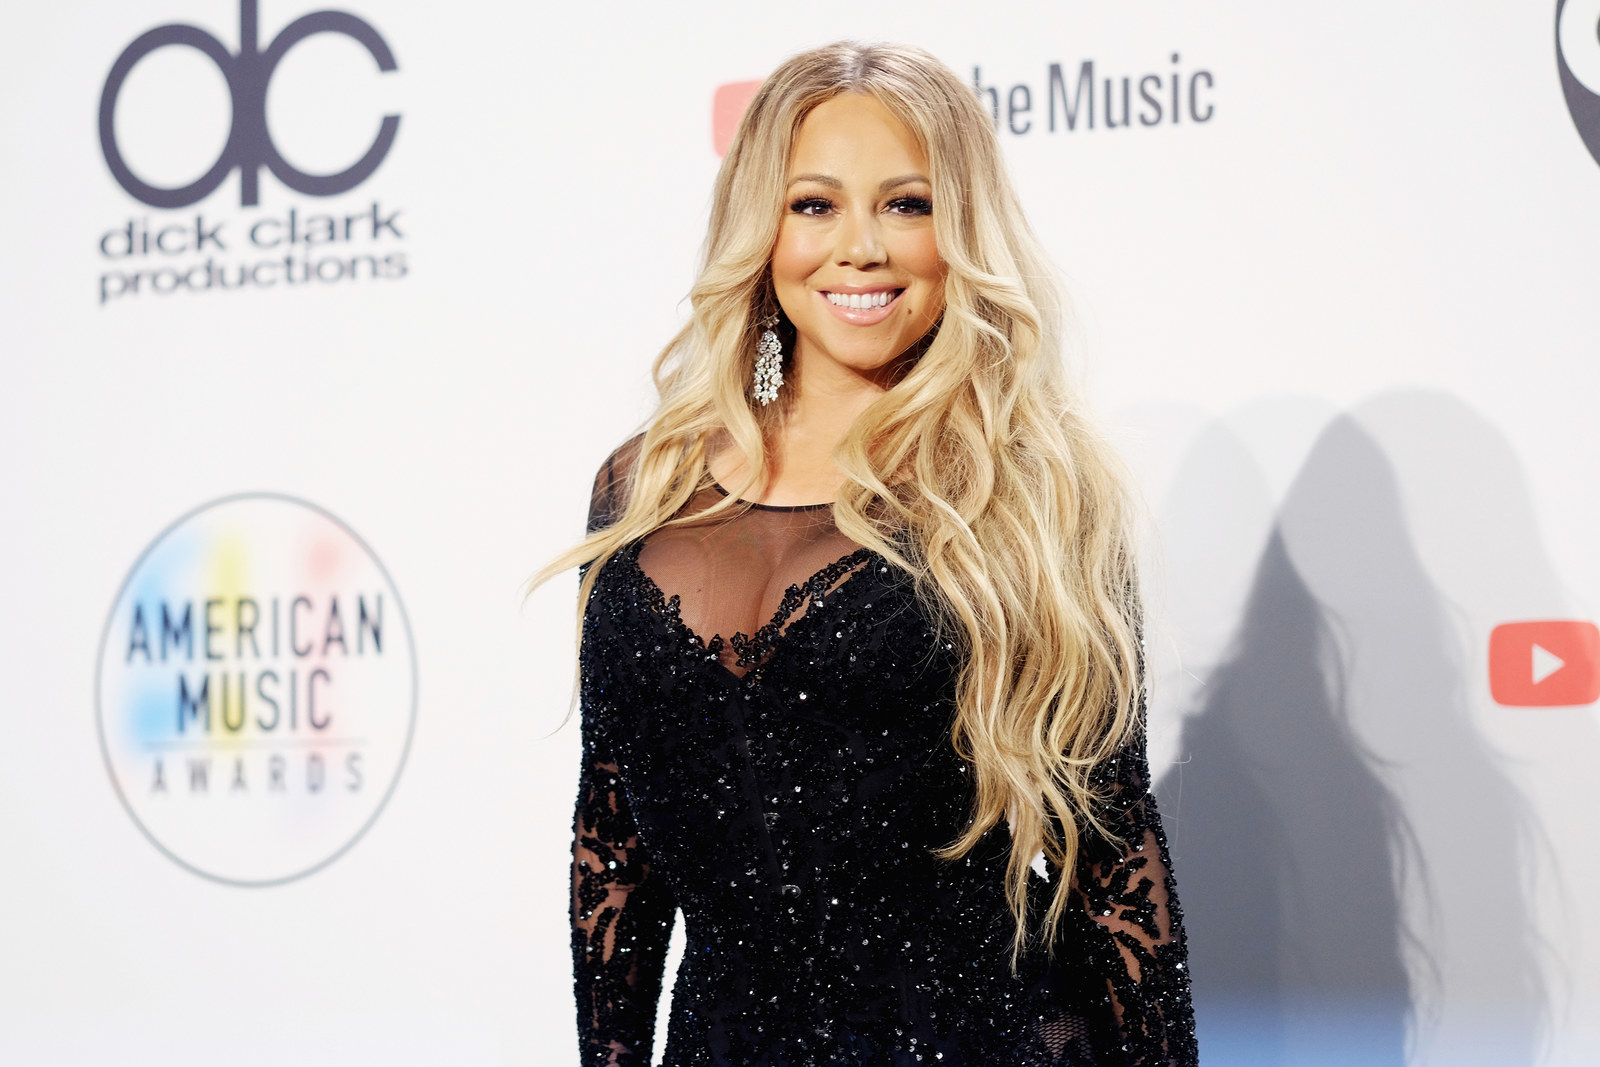 Mariah Carey's 49th birthday is on March 27.